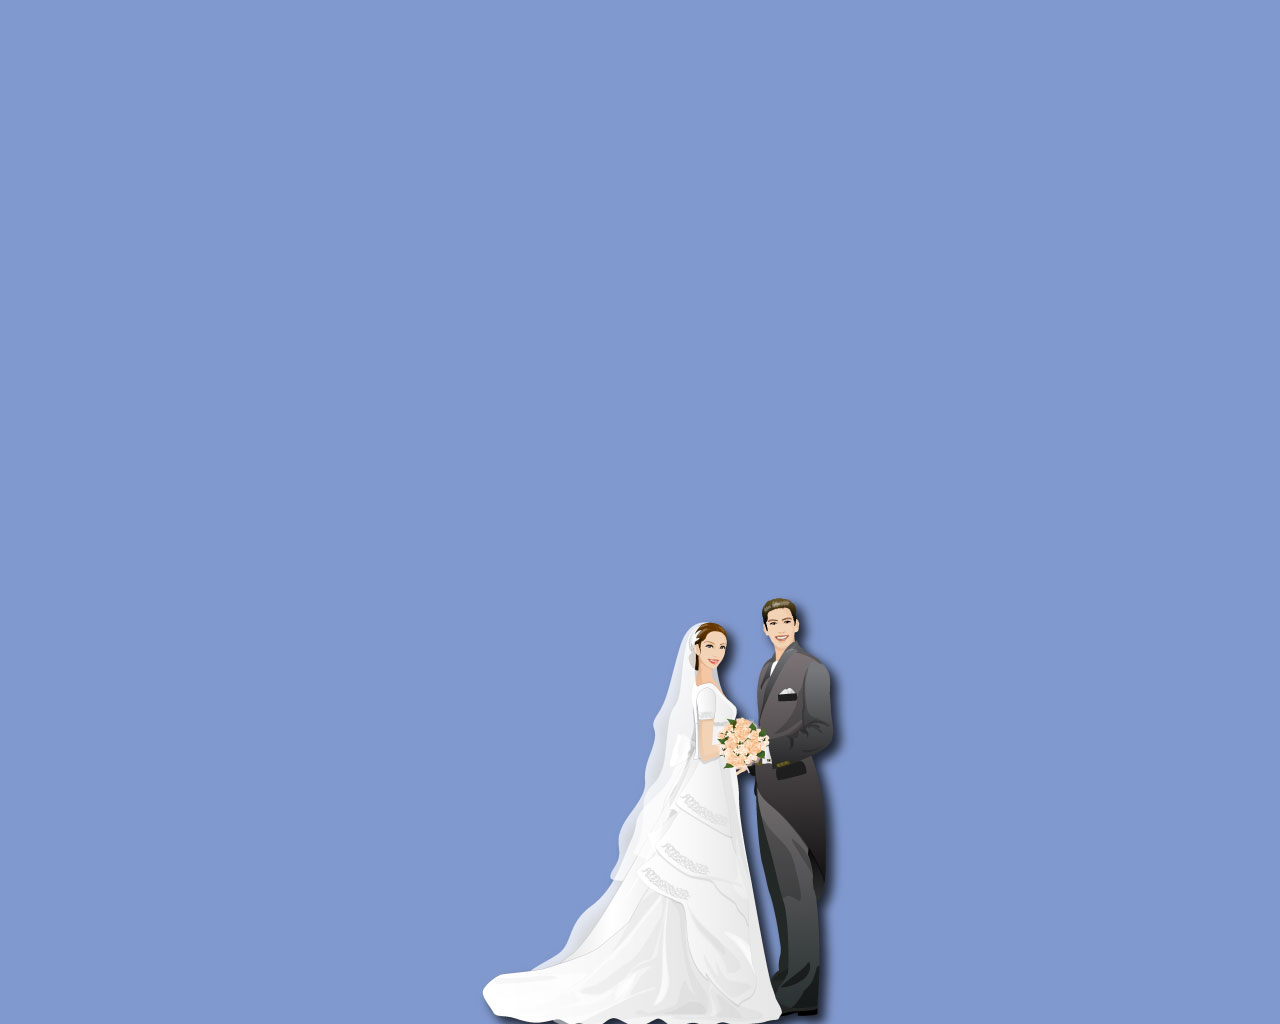 Clip Art Wedding Backgrounds For PowerPoint.